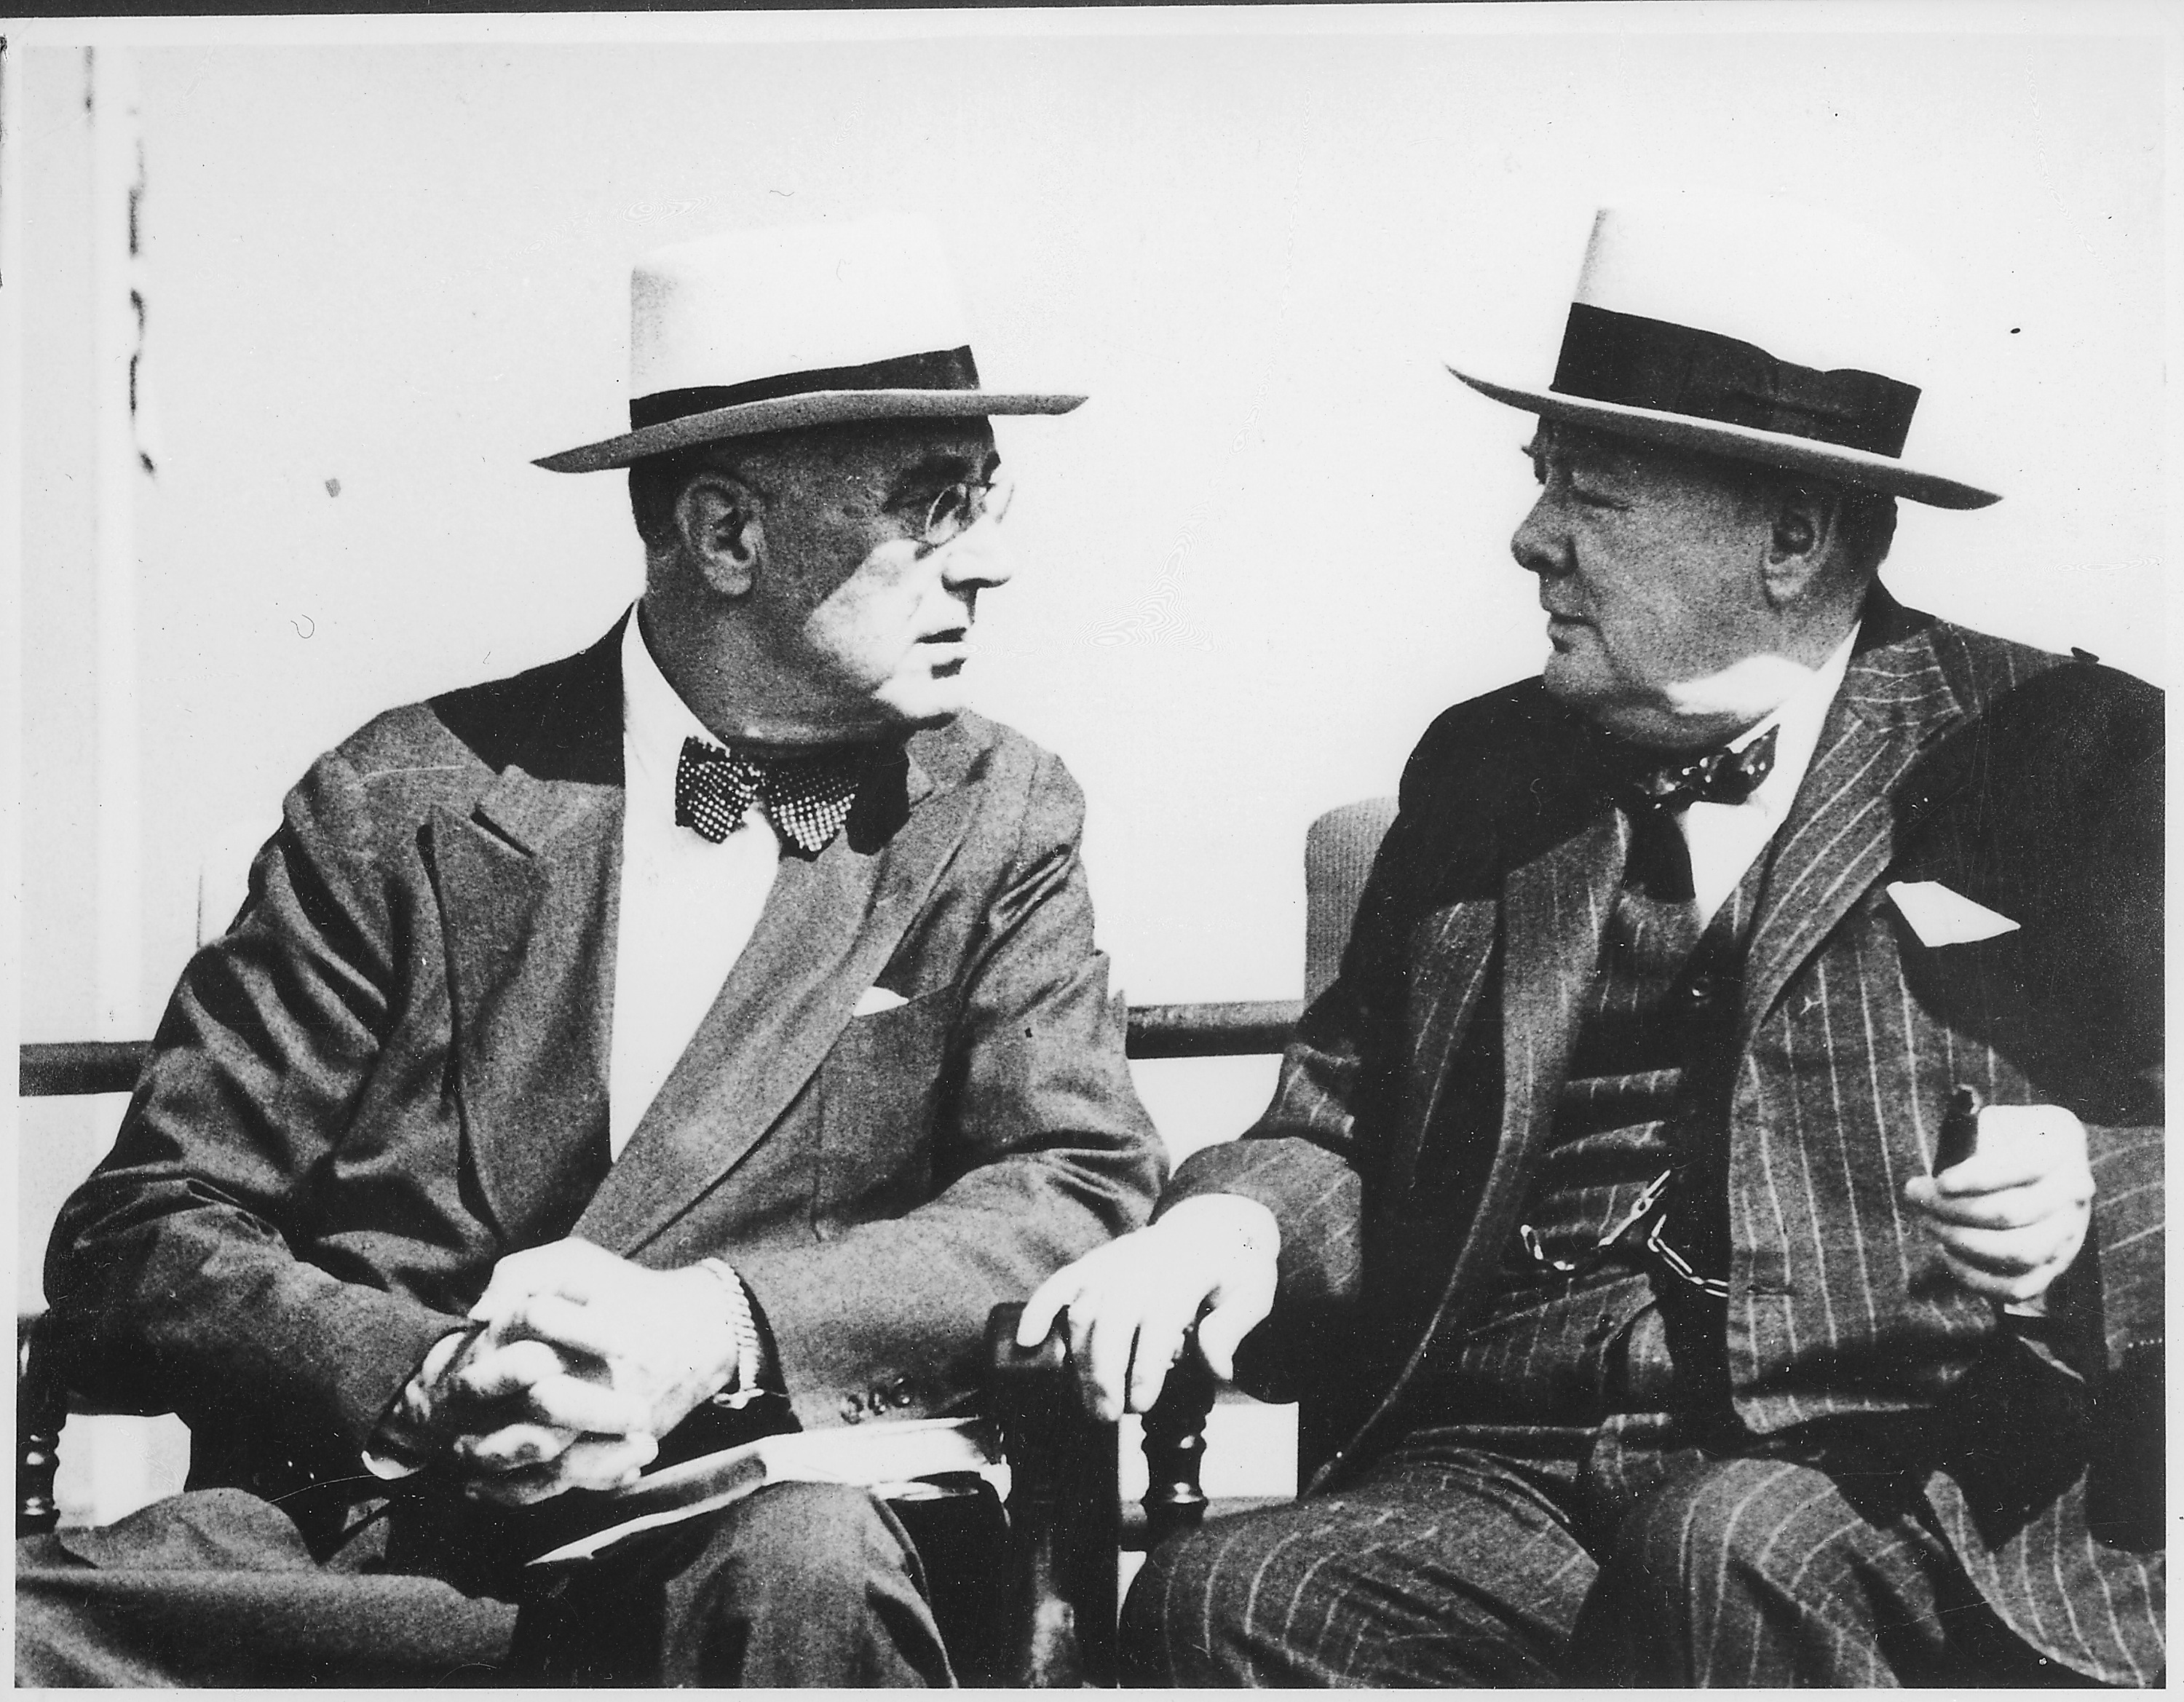 After an op-ed about Franklin D. Roosevelt (left) and Winston Churchill, John Broich faced intense backlash.